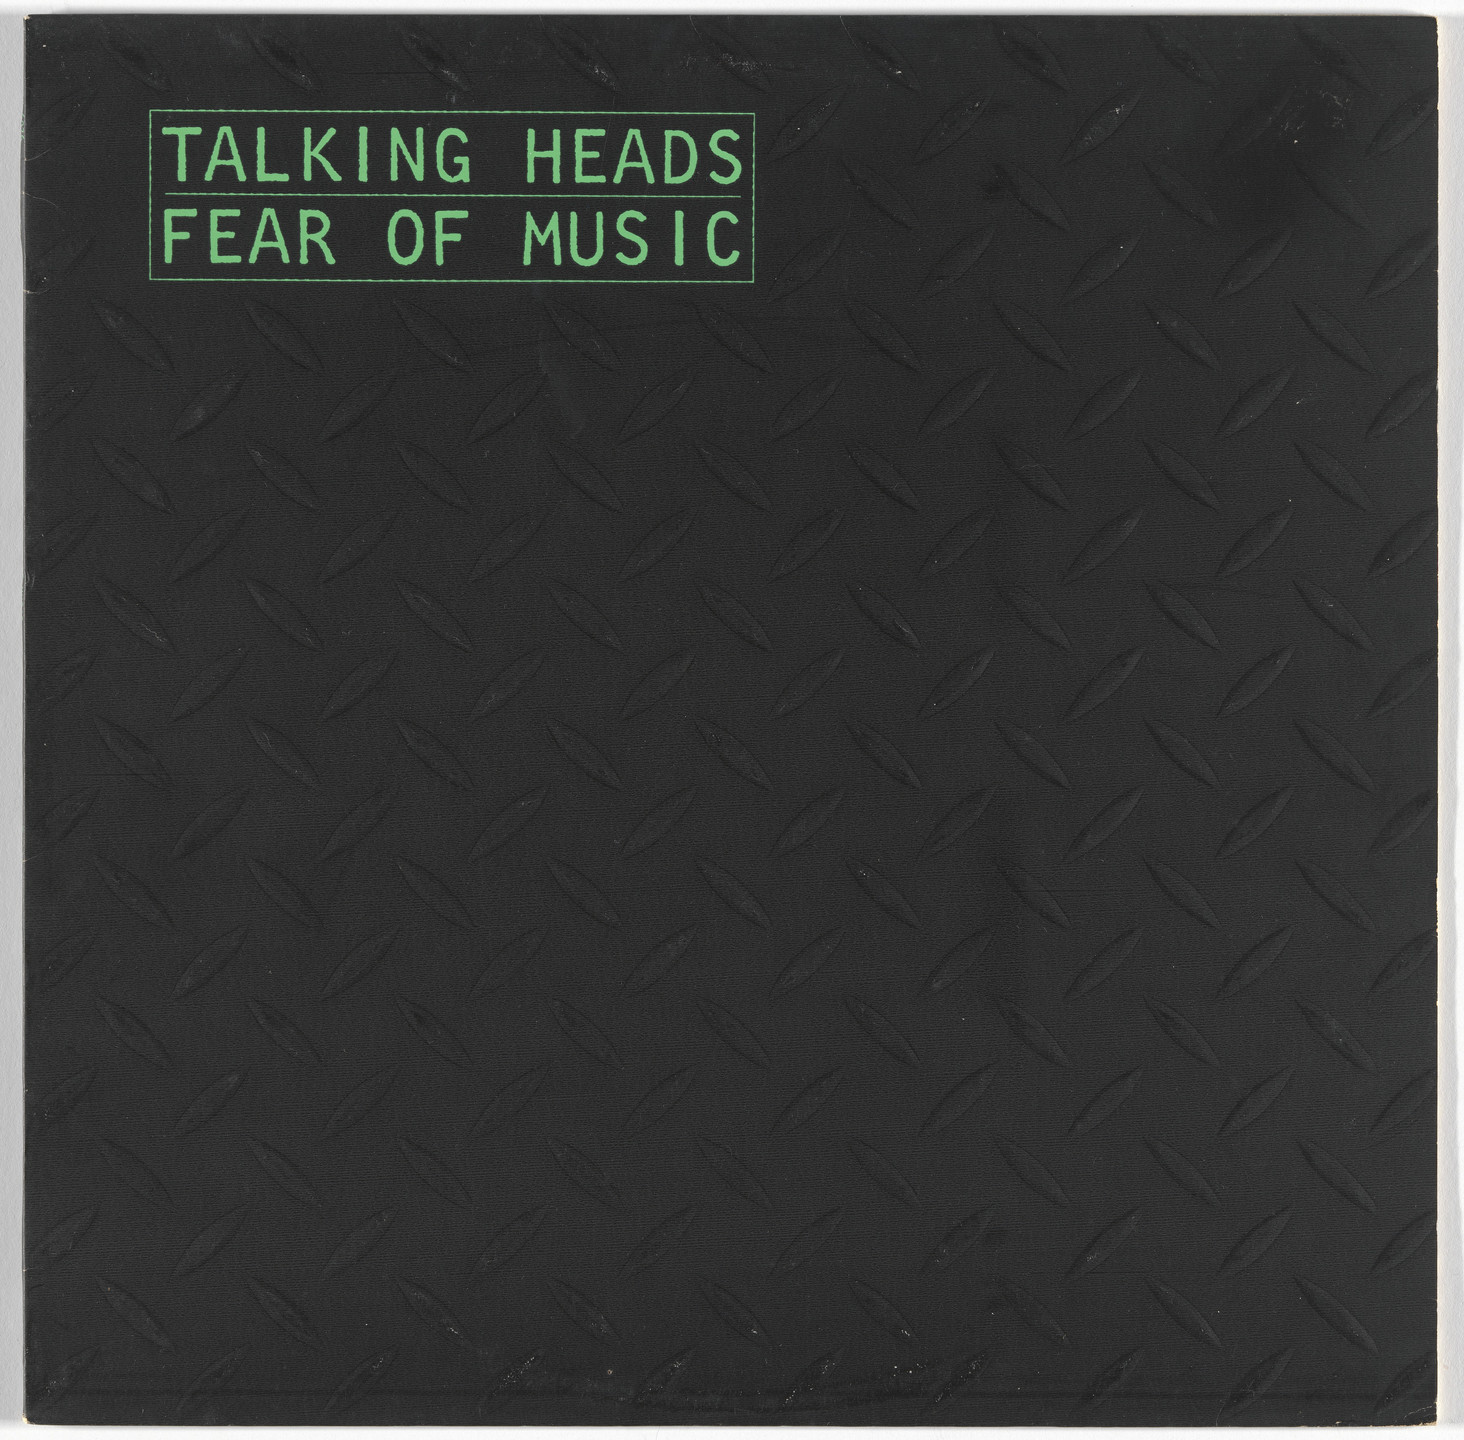 Jerry Harrison, David Byrne, Jimmy Garcia, Spencer Drate, Sire Records. Album cover for Talking Heads, Fear of Music. 1979